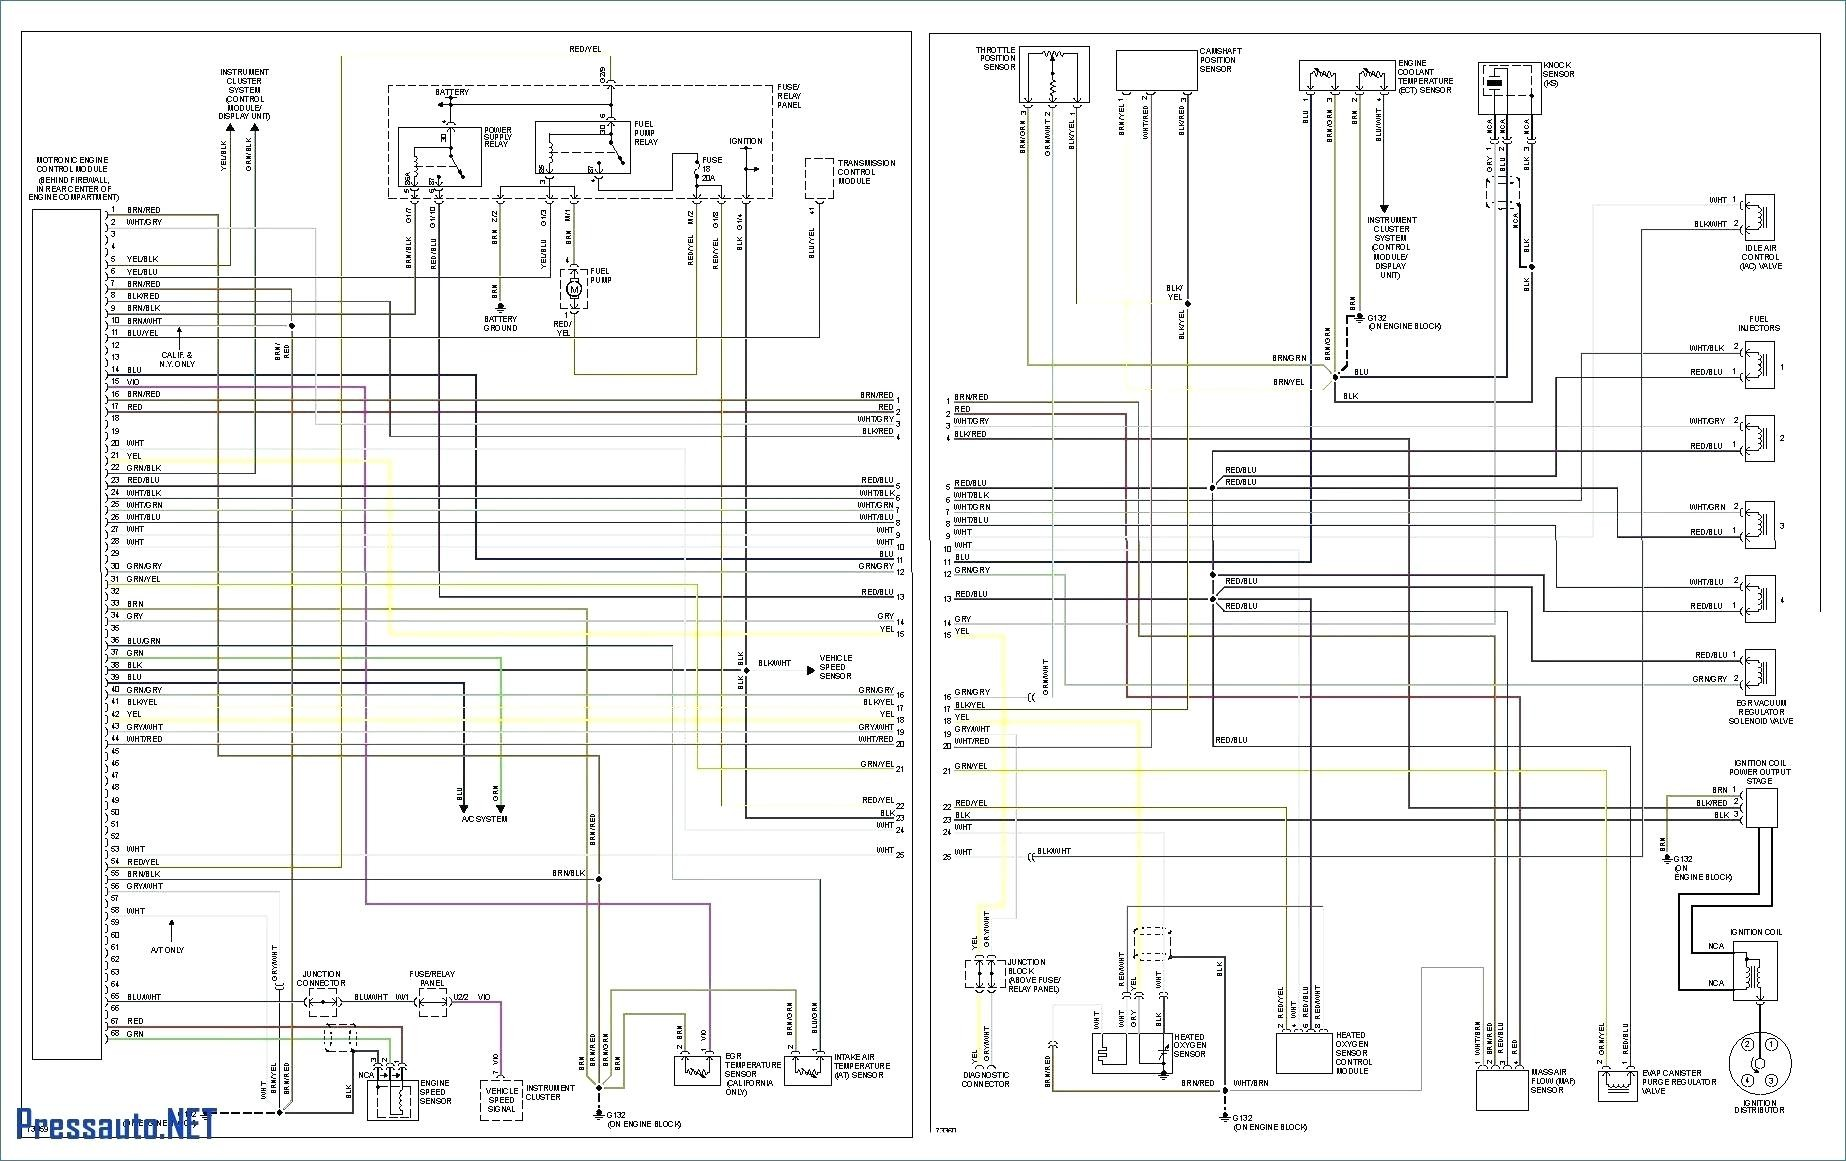 67F0E 99 5 Vw Jetta Wiring Schematic | Digital Resources on yukon wiring diagram, eurovan wiring diagram, jetta firing order, fusion wiring diagram, jetta ignition key, vw wiring diagram, 300m wiring diagram, es 350 wiring diagram, type 181 wiring diagram, matrix wiring diagram, frontier wiring diagram, celica wiring diagram, cooper wiring diagram, type 3 wiring diagram, forester wiring diagram, galant wiring diagram, impreza wiring diagram, g6 wiring diagram, avalon wiring diagram, legacy wiring diagram,